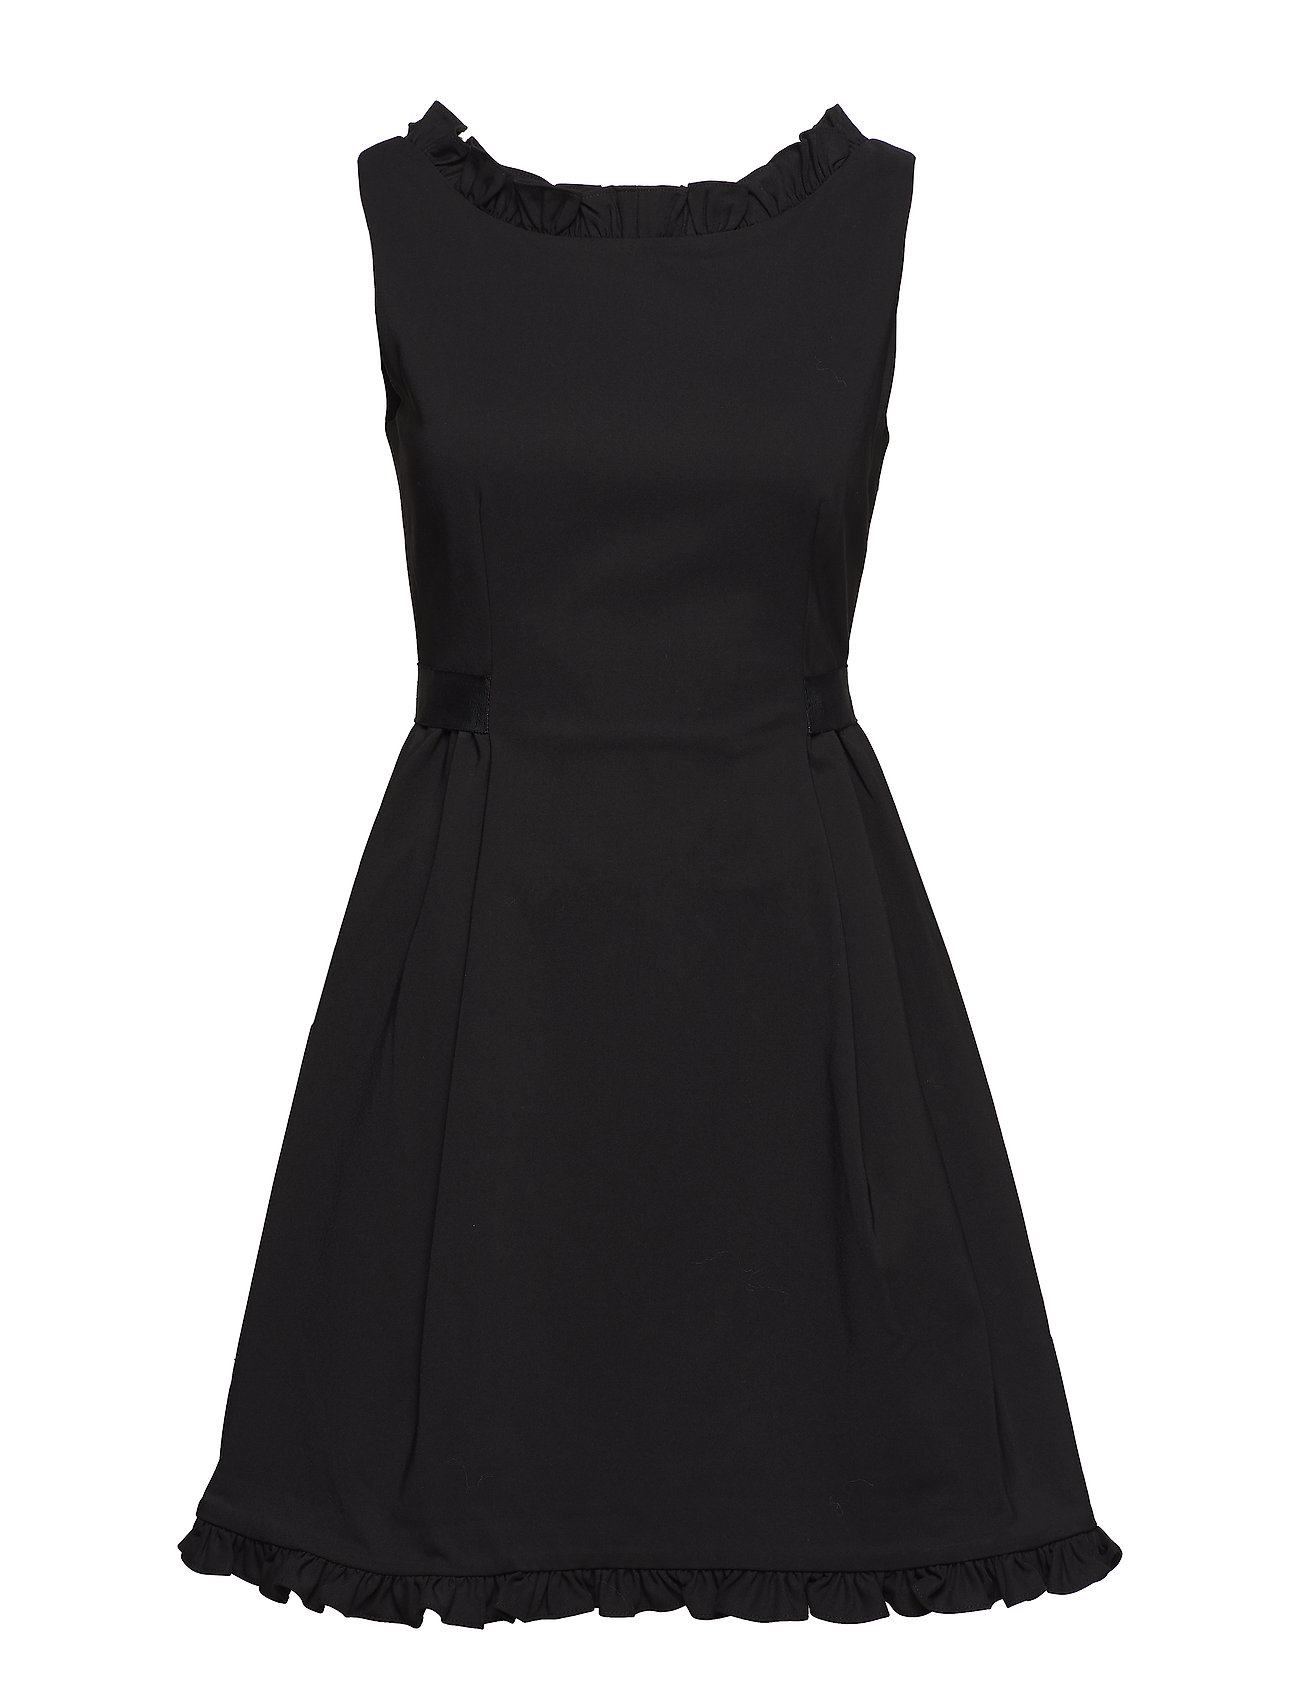 FRENCH CONNECTION Alvina Stretch Frill Bltd Drss Kleid Schwarz FRENCH CONNECTION